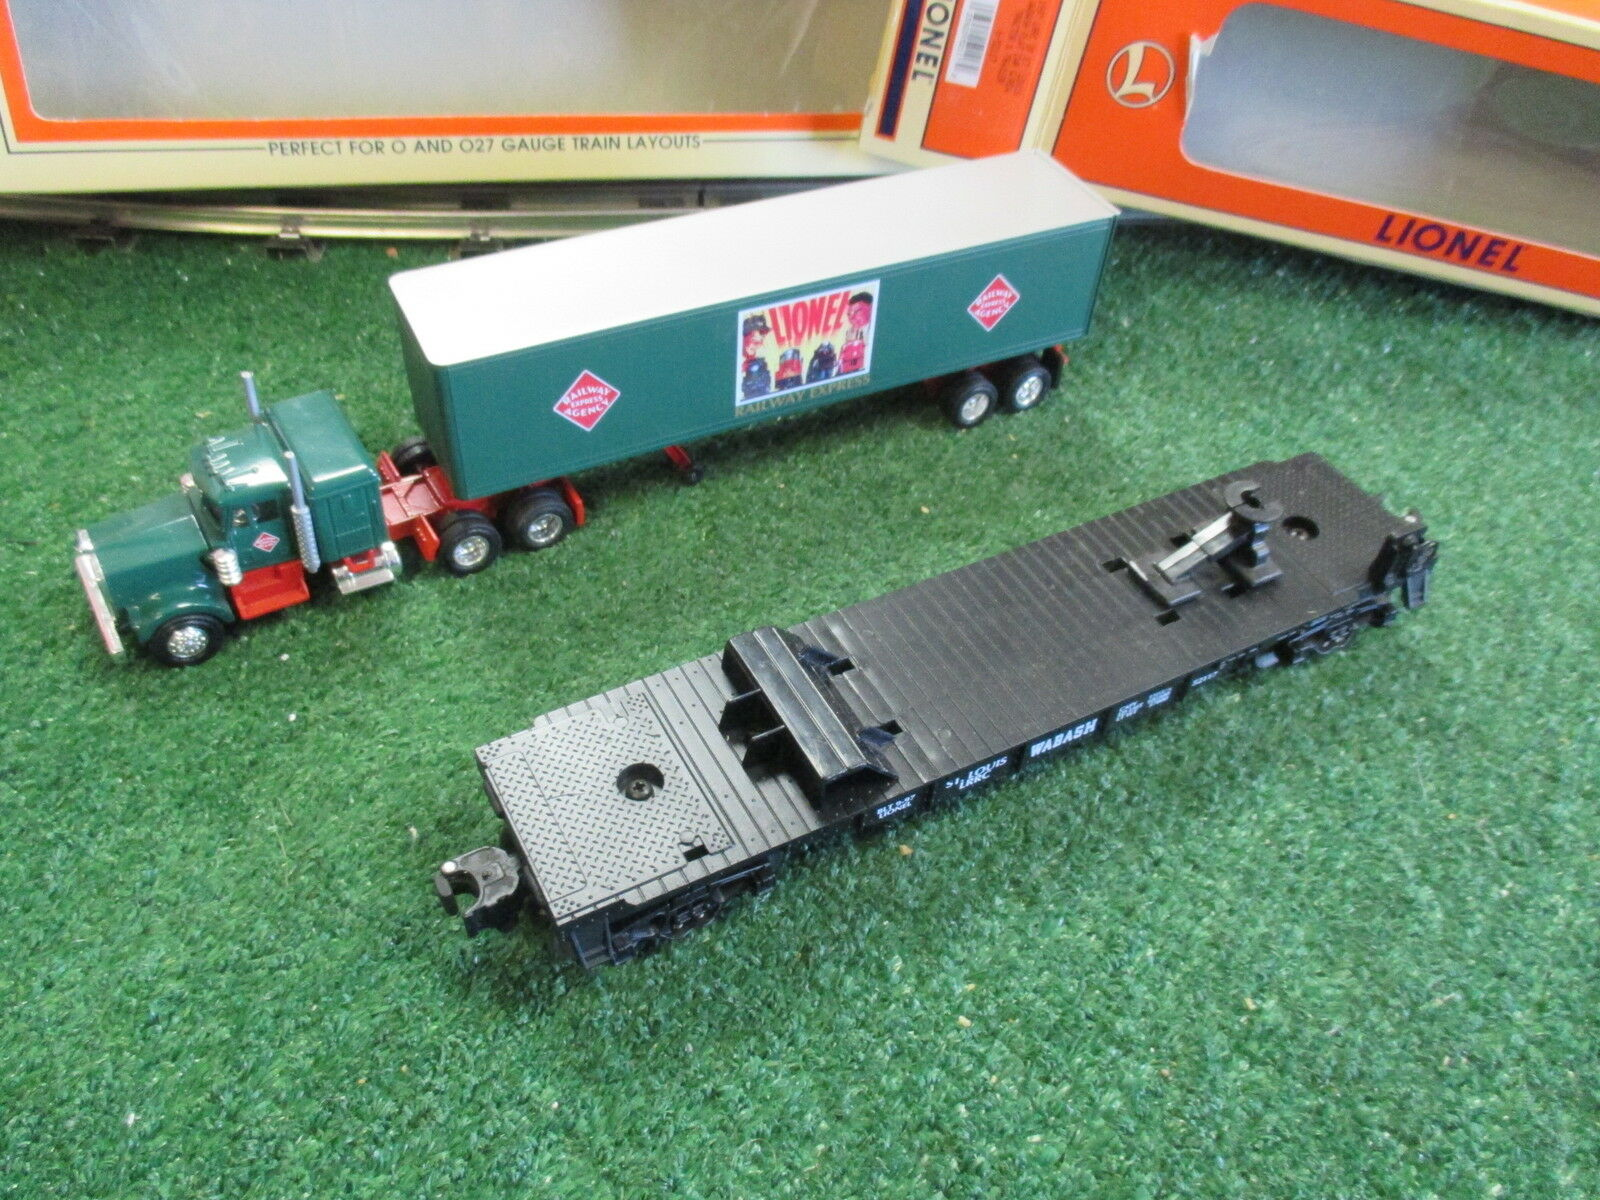 LIONEL 52117 LRRC OF ST LOUIS WABASH FLATCAR WITH REA TRACTOR AND TRAILER 1997